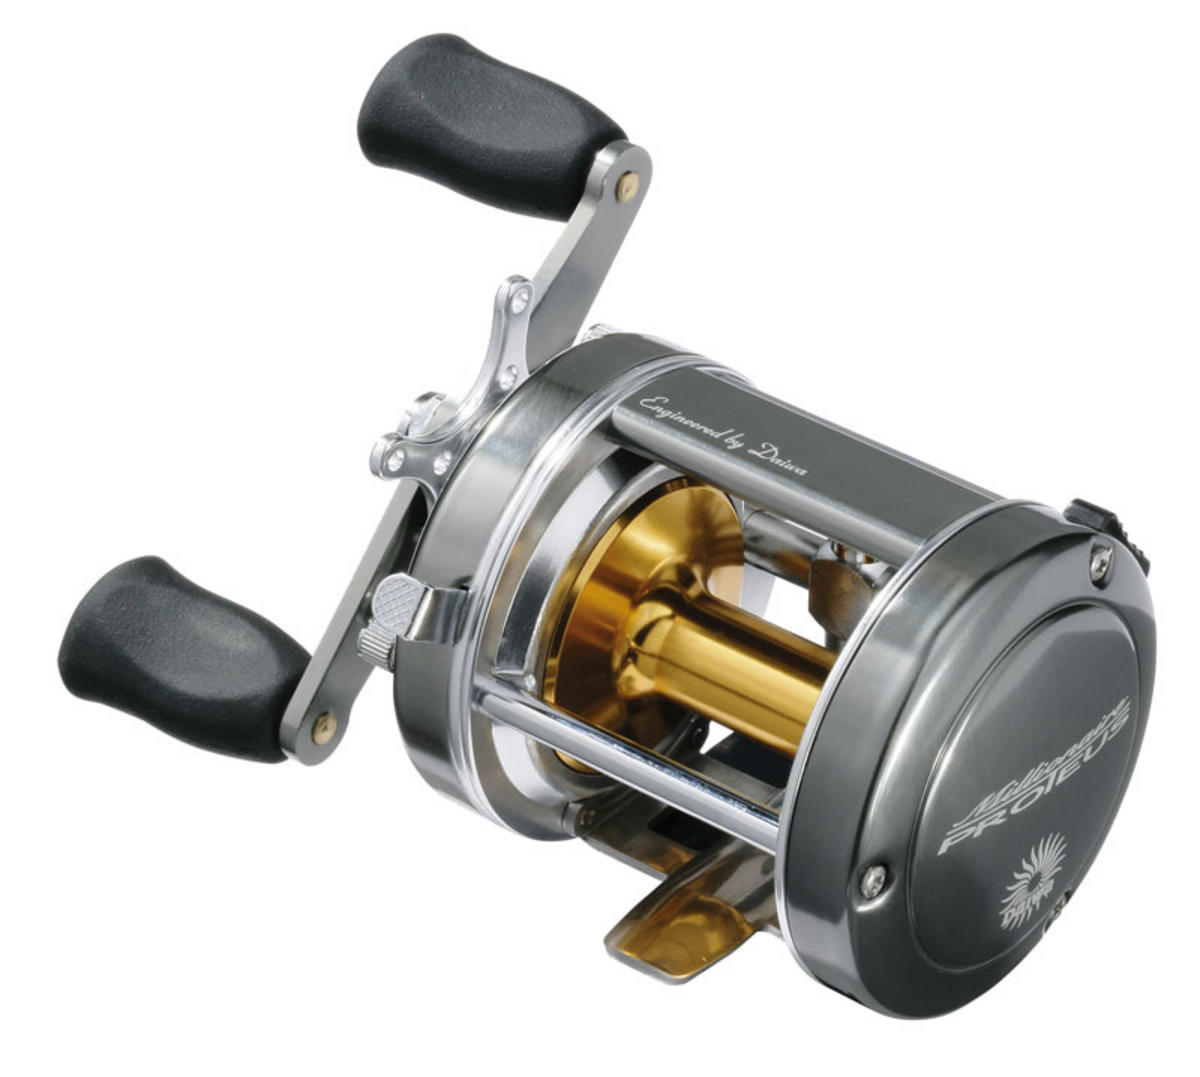 Special Offer Daiwa Millionaire Proteus 300 RHW Multiplier Reel MP300